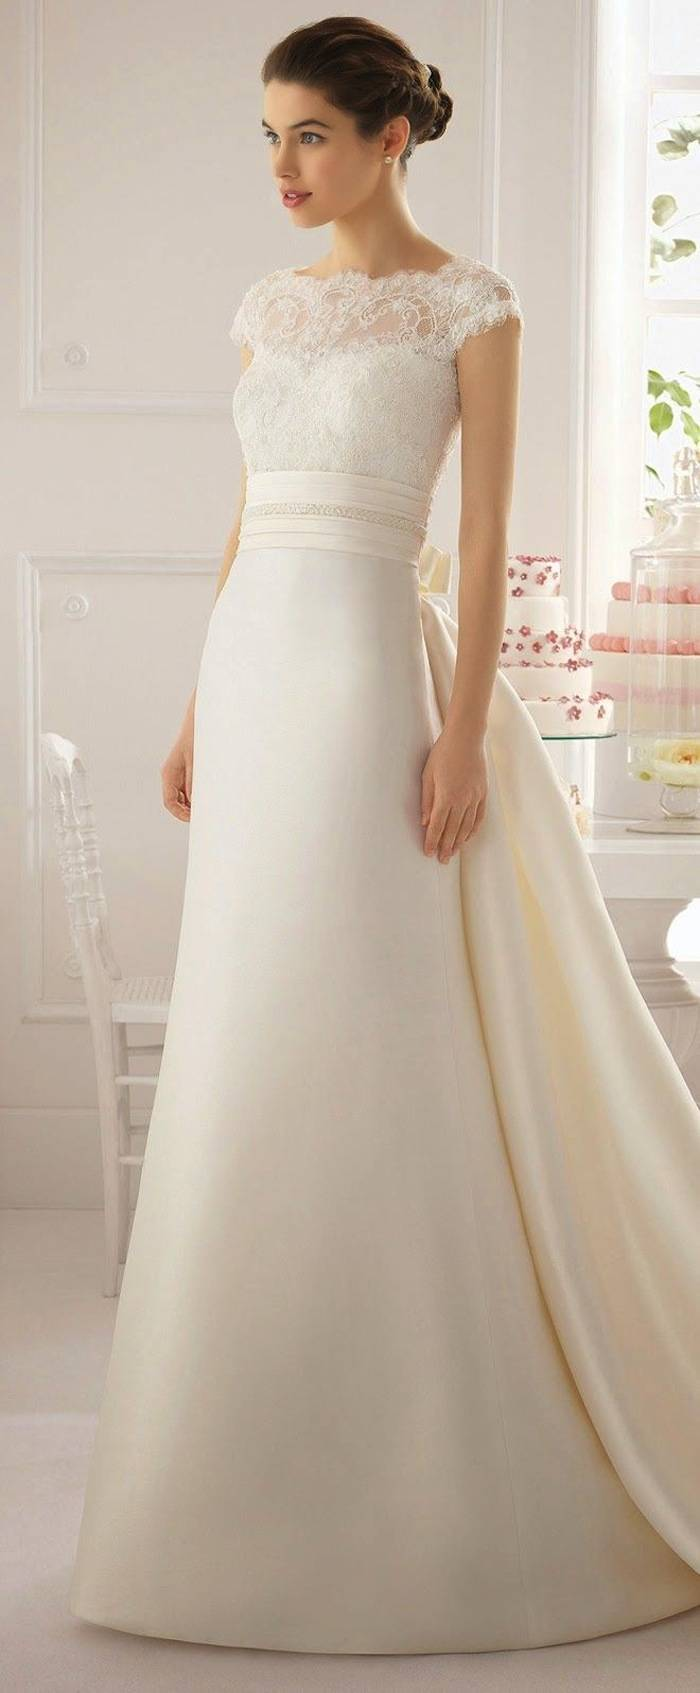 modest wedding dresses with gorgeous details modest wedding dress Featured Dress La Sposa modest wedding dresses 37 ky